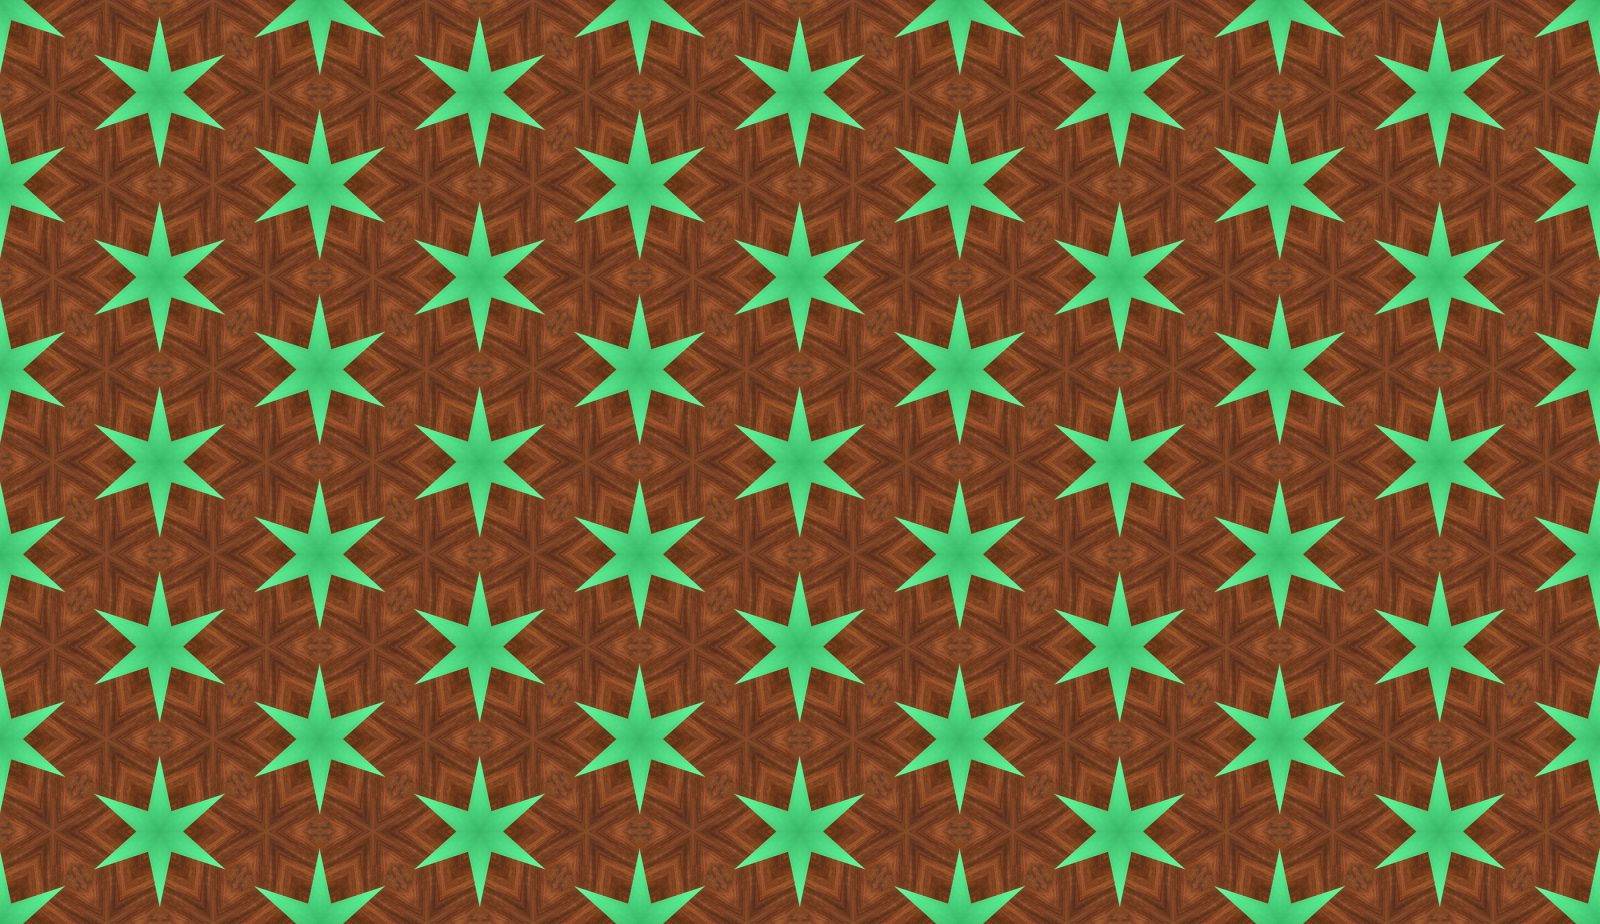 Green Paper Stars On Wood pattern pictures